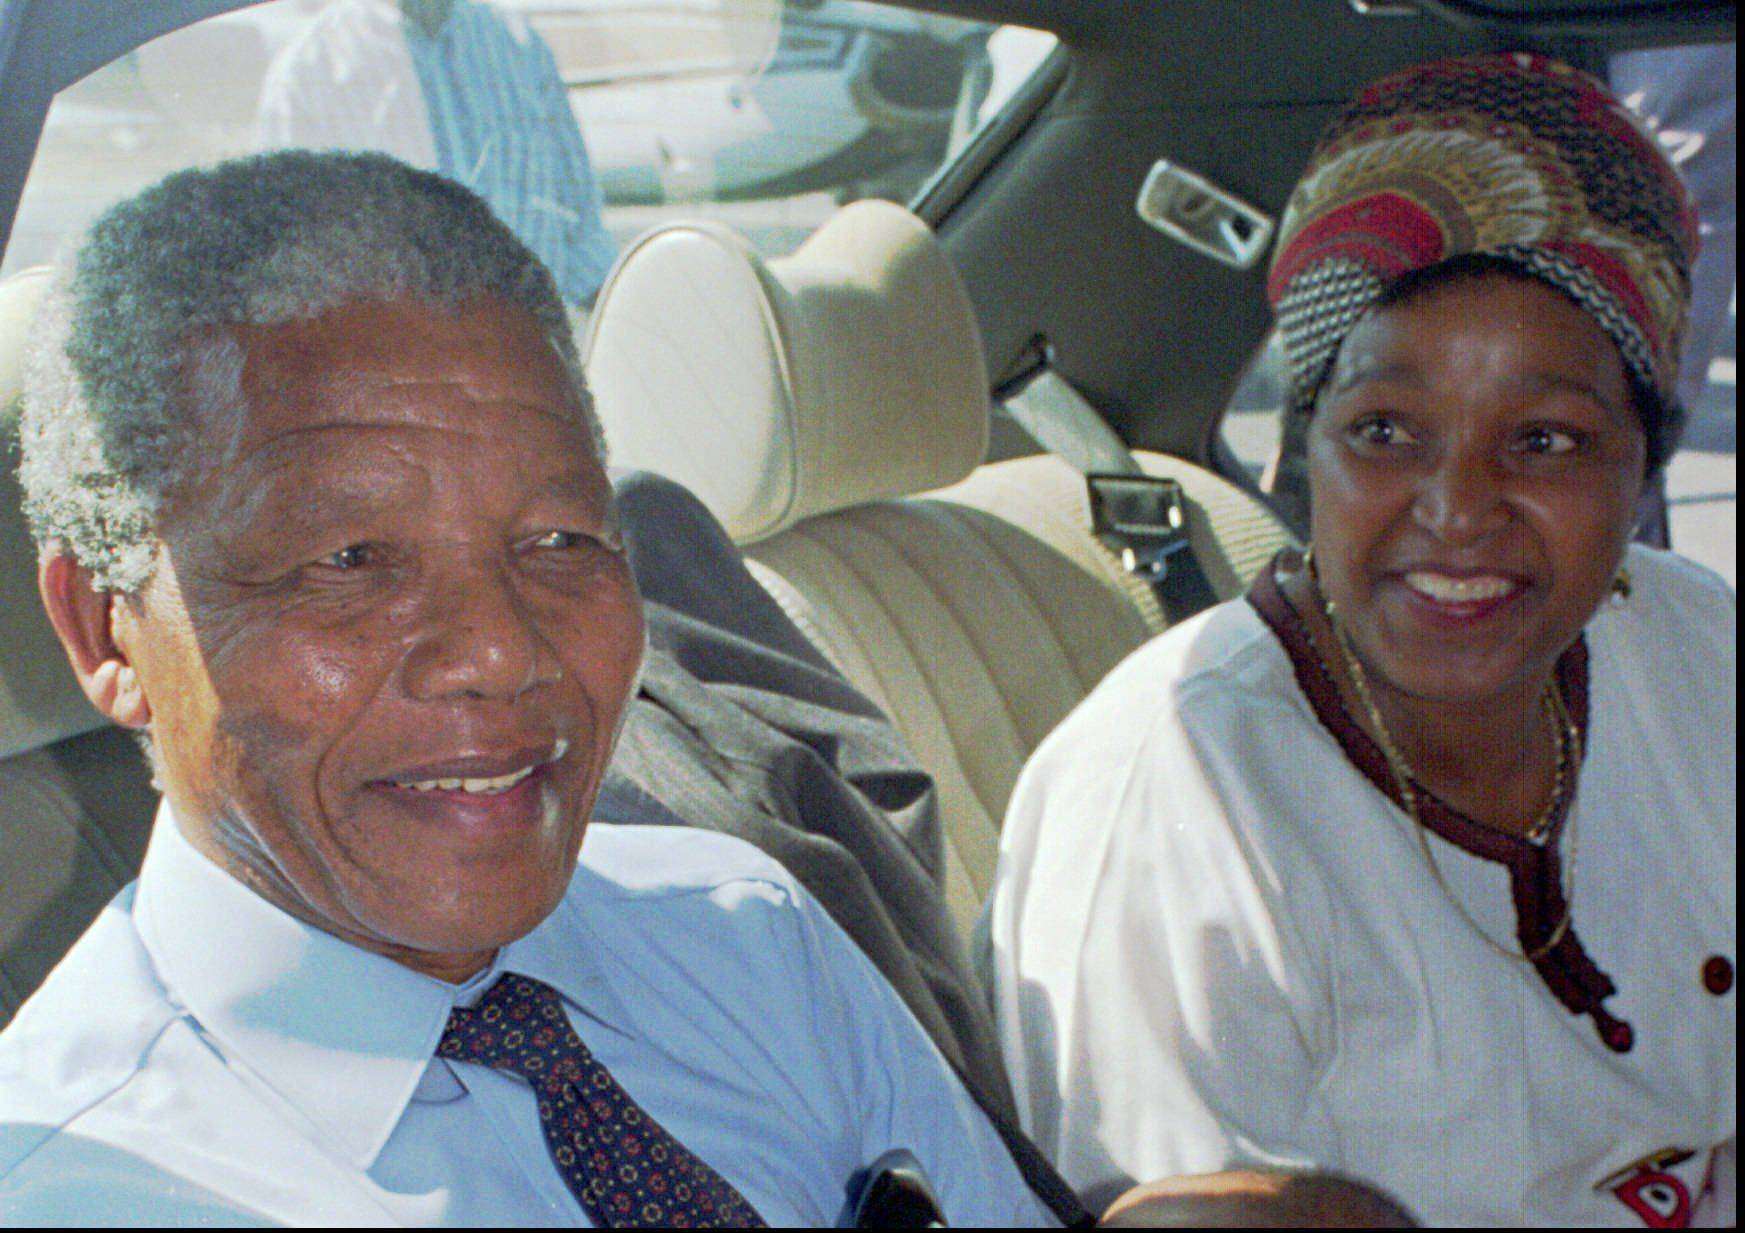 Nelson Mandela, left, and his wife Winnie, right, at Cape Town's airport prior to a flight to Johannesburg in this February 1990 photo, the day after his release from prison.